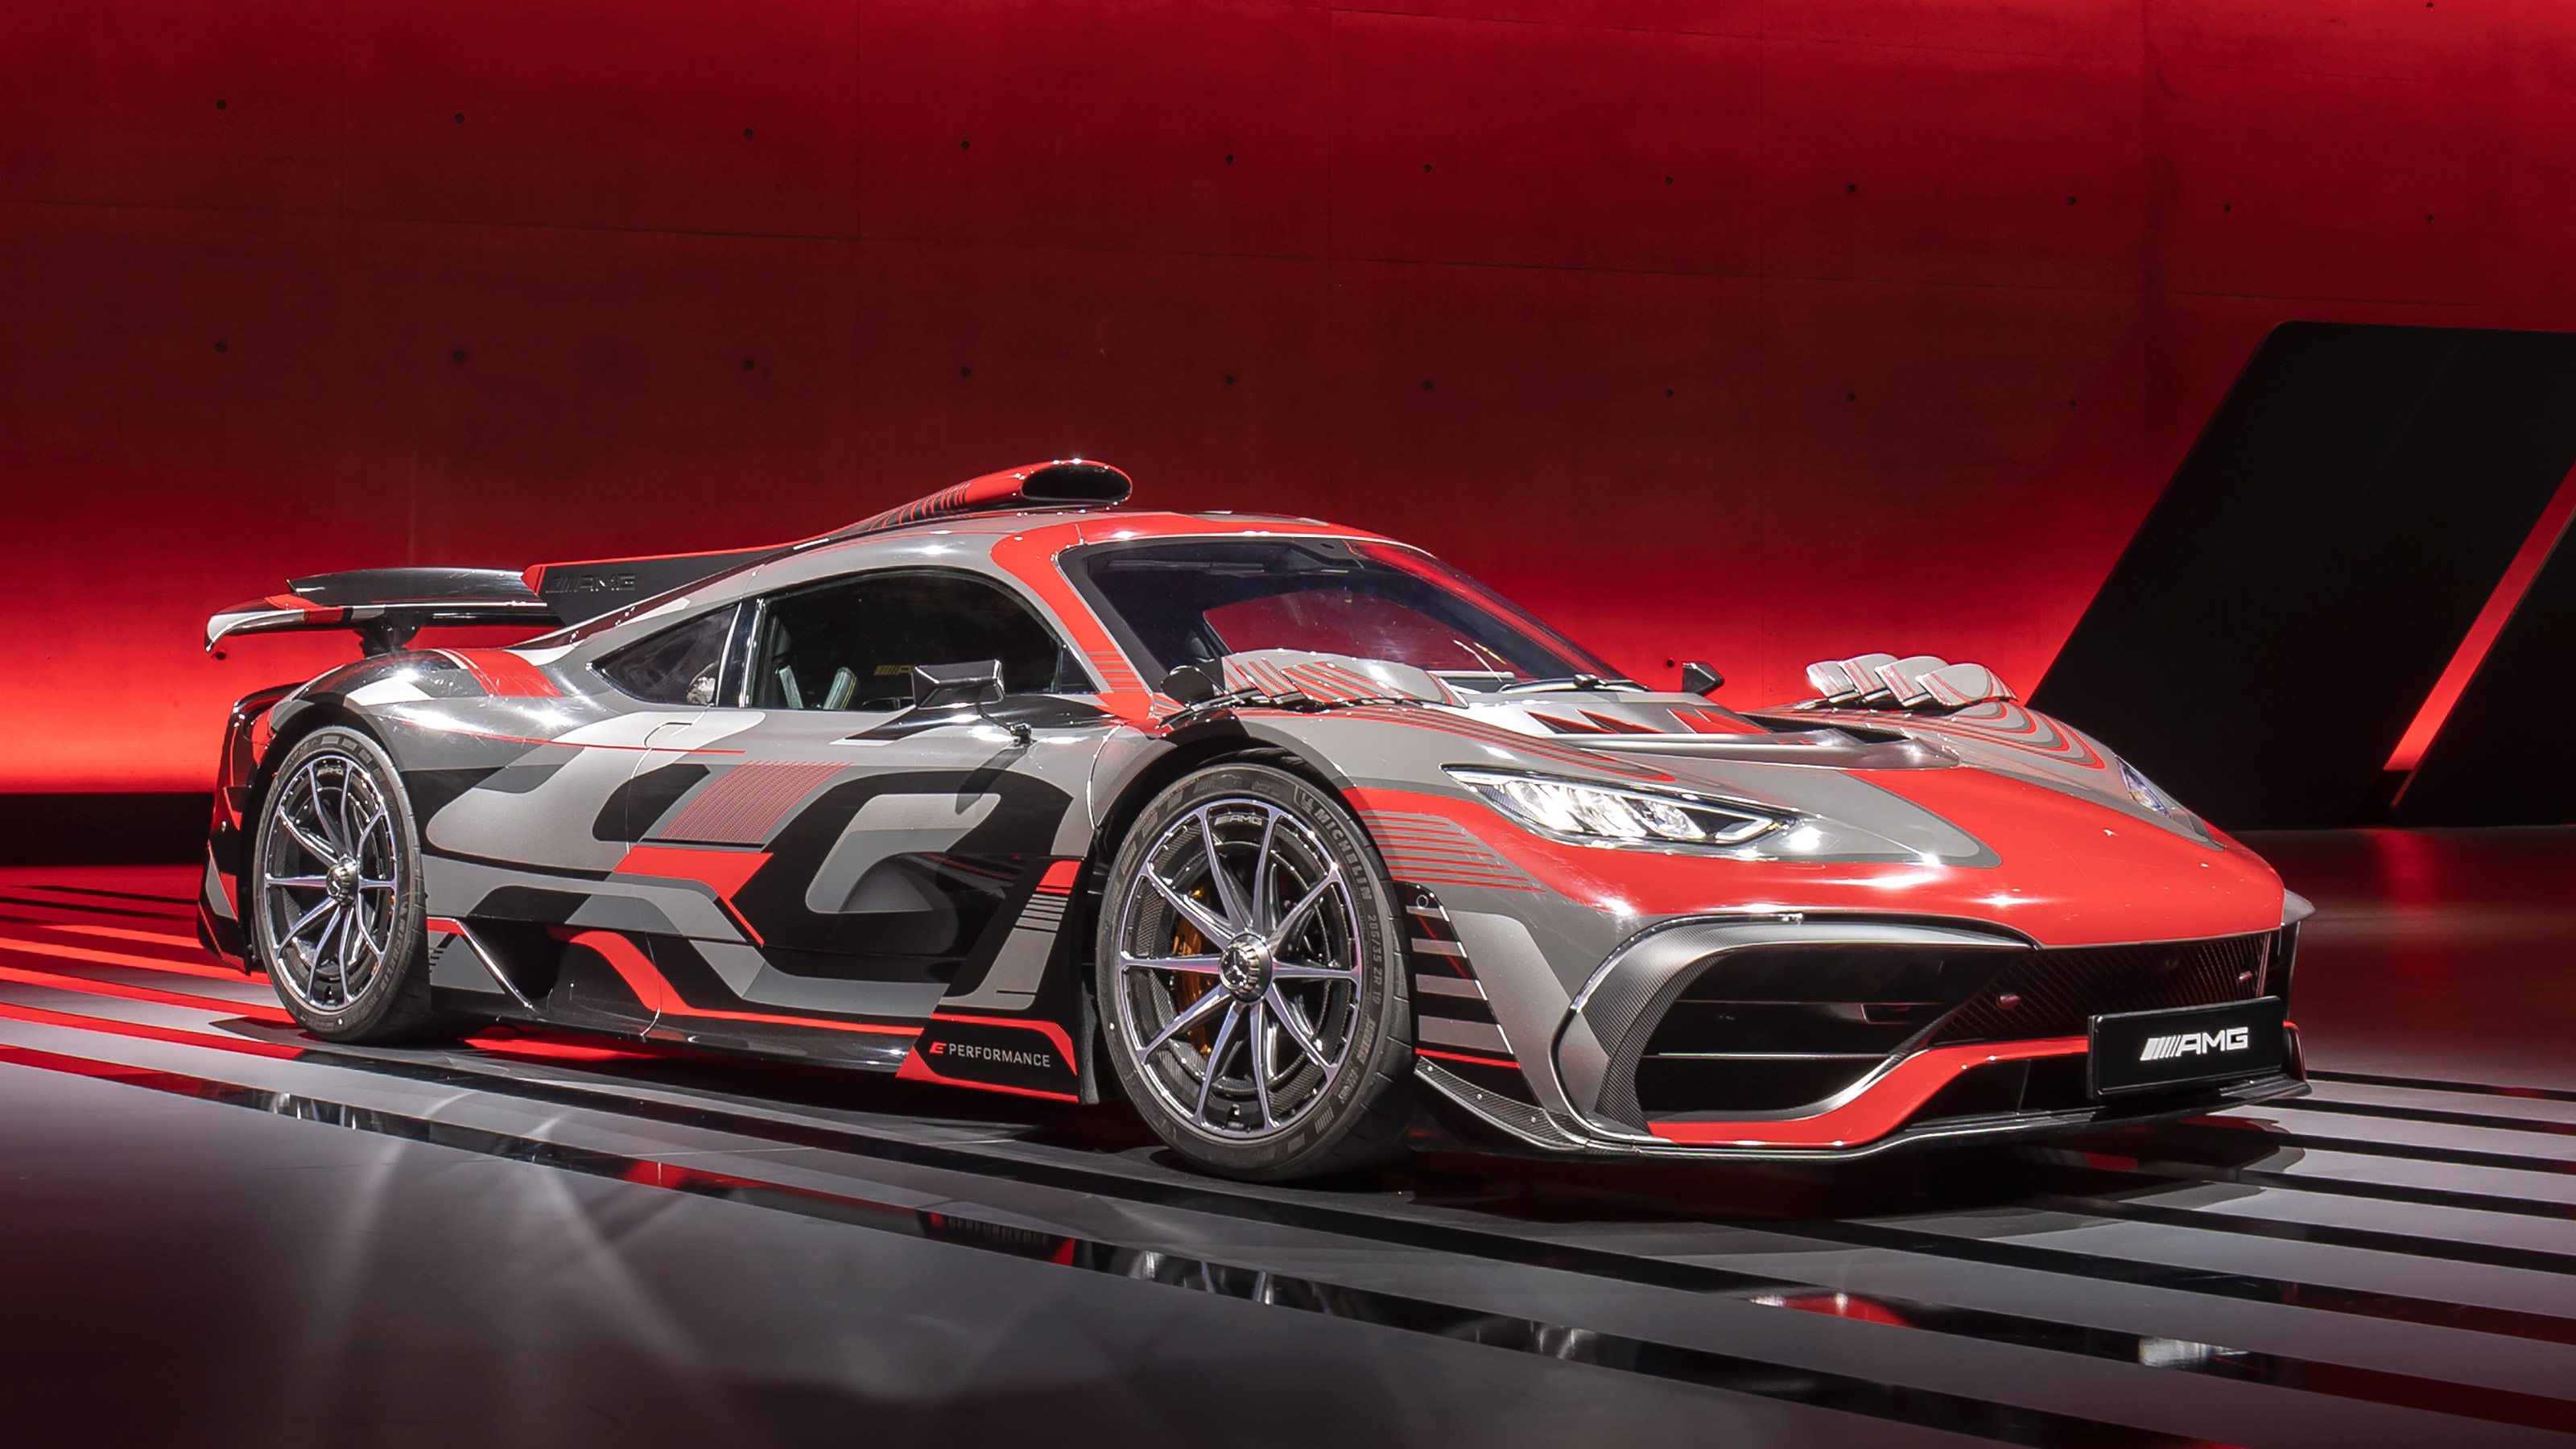 MercedesAMG%20Project%20One%2031%20March